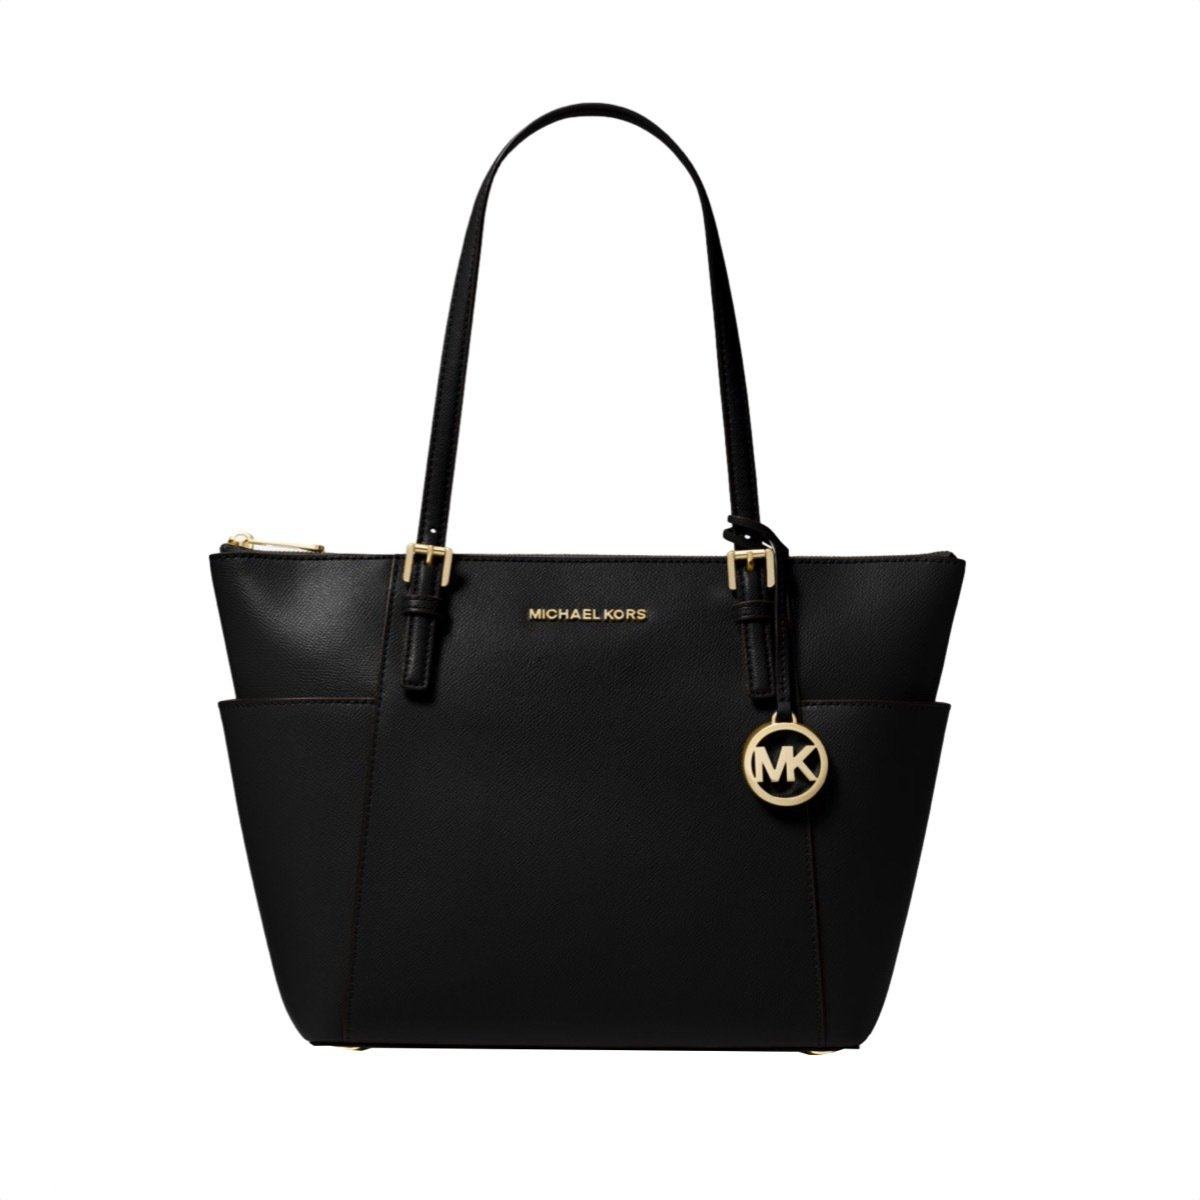 MICHAEL KORS - Shopping Tote MD - Black